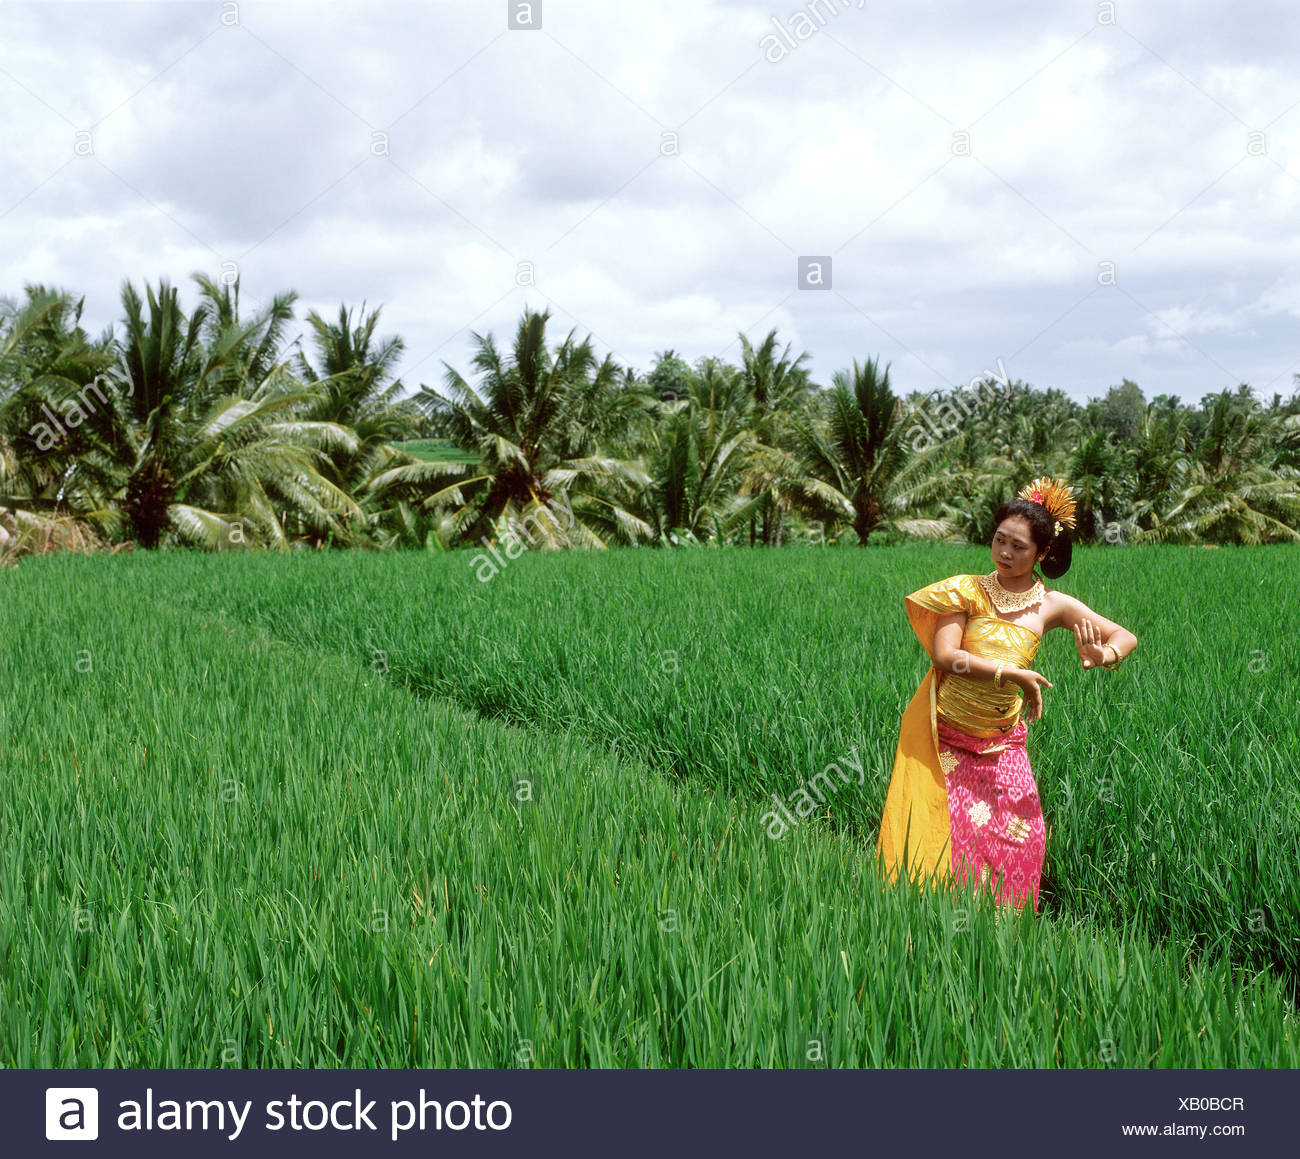 indonesia bali balinese dancer in padi fields trees in background stock photo alamy https www alamy com indonesia bali balinese dancer in padi fields trees in background image282136087 html